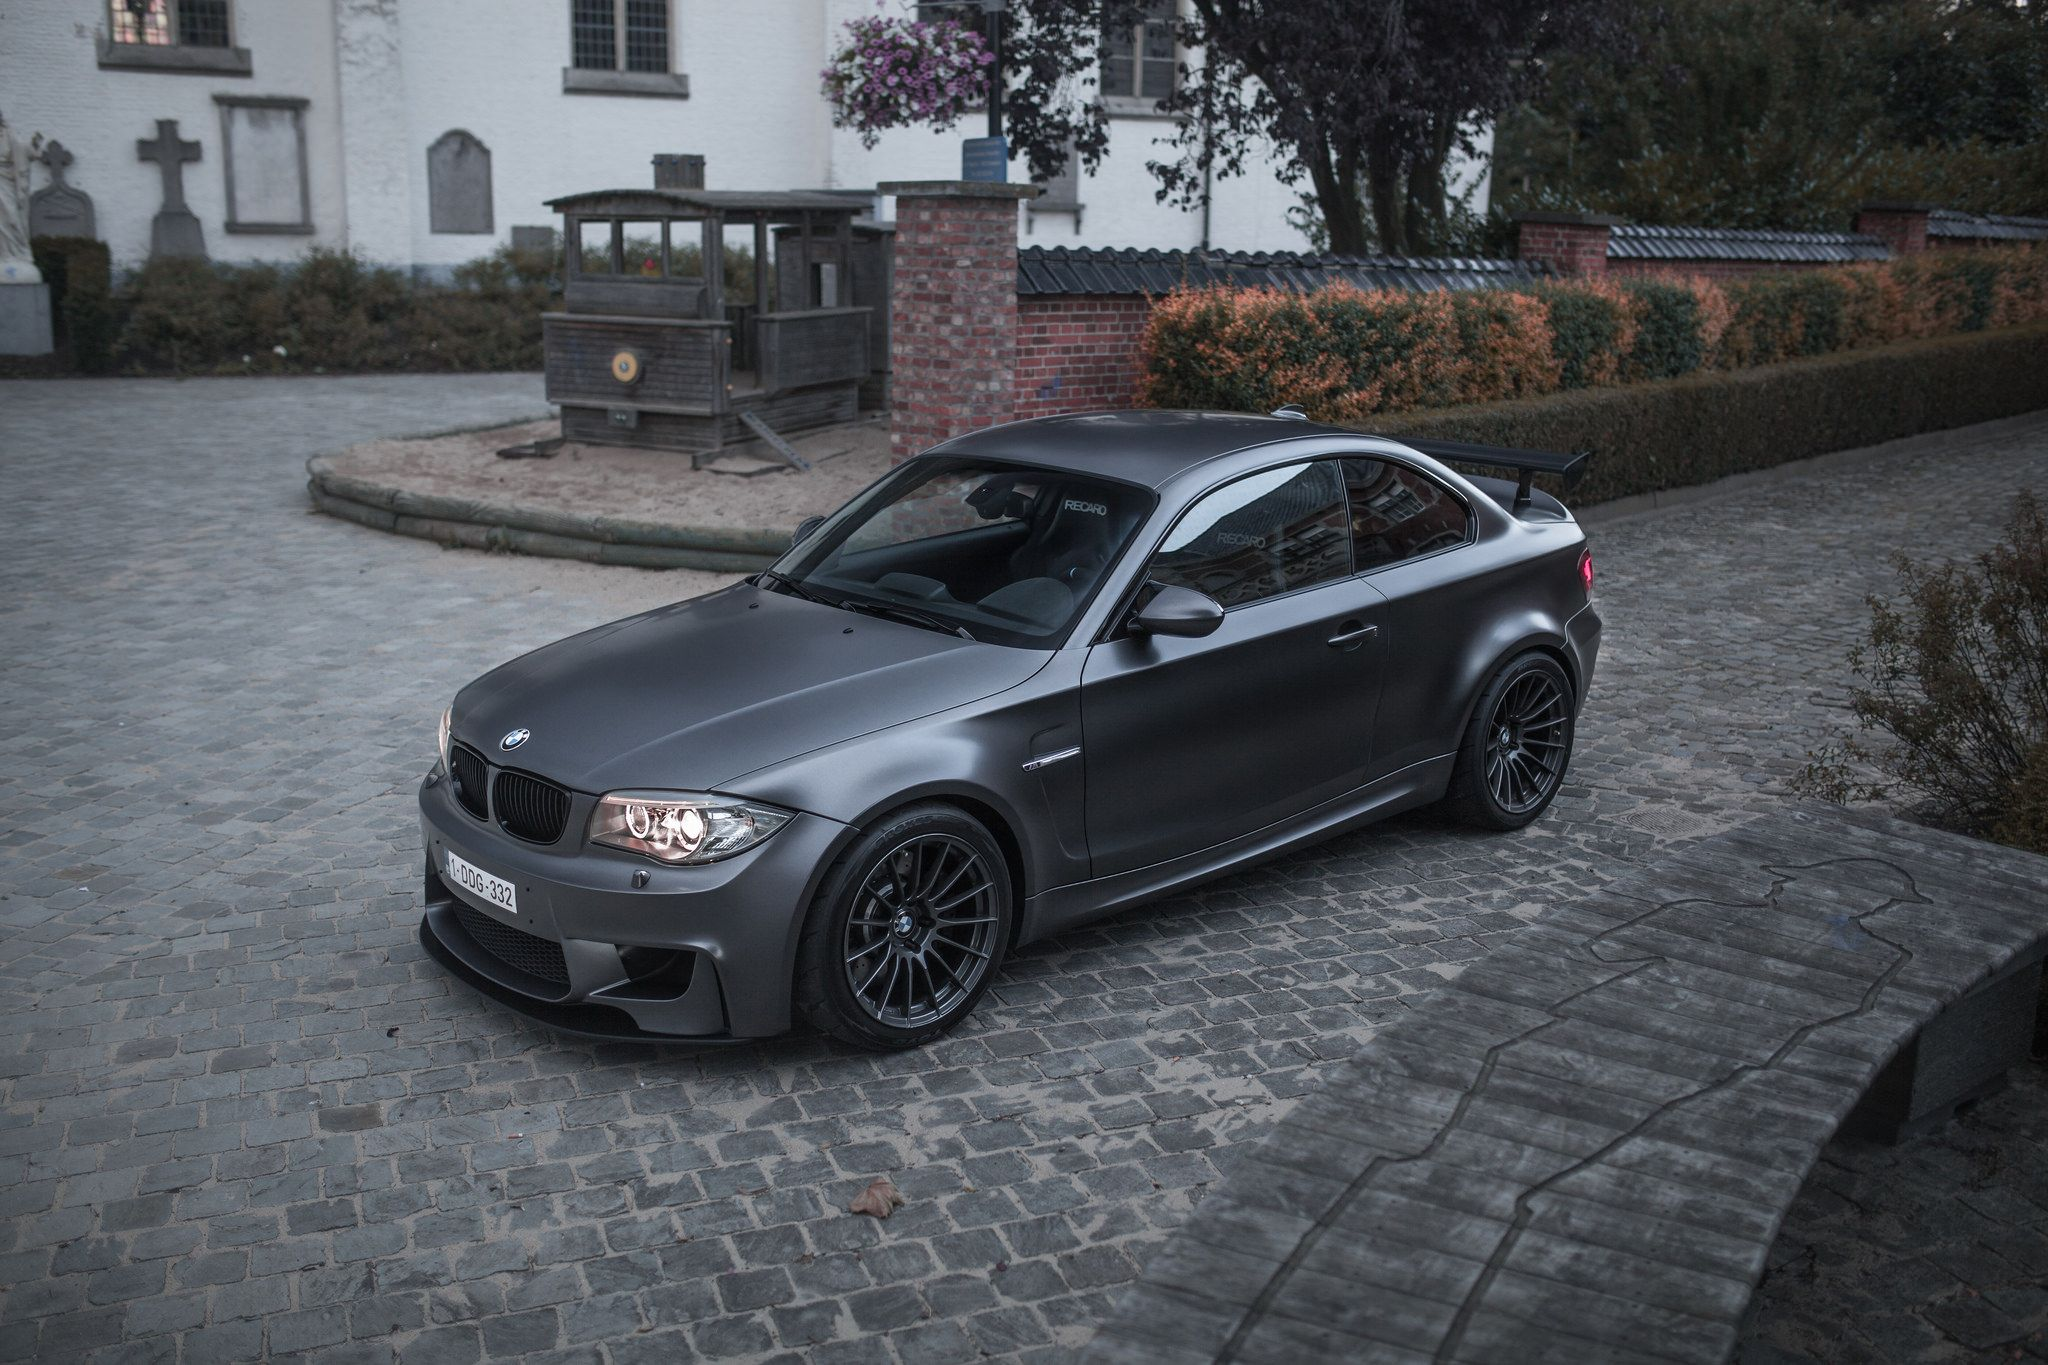 118 bmw m3 sedan f80 vossen tuning toysamp118. Black Bedroom Furniture Sets. Home Design Ideas